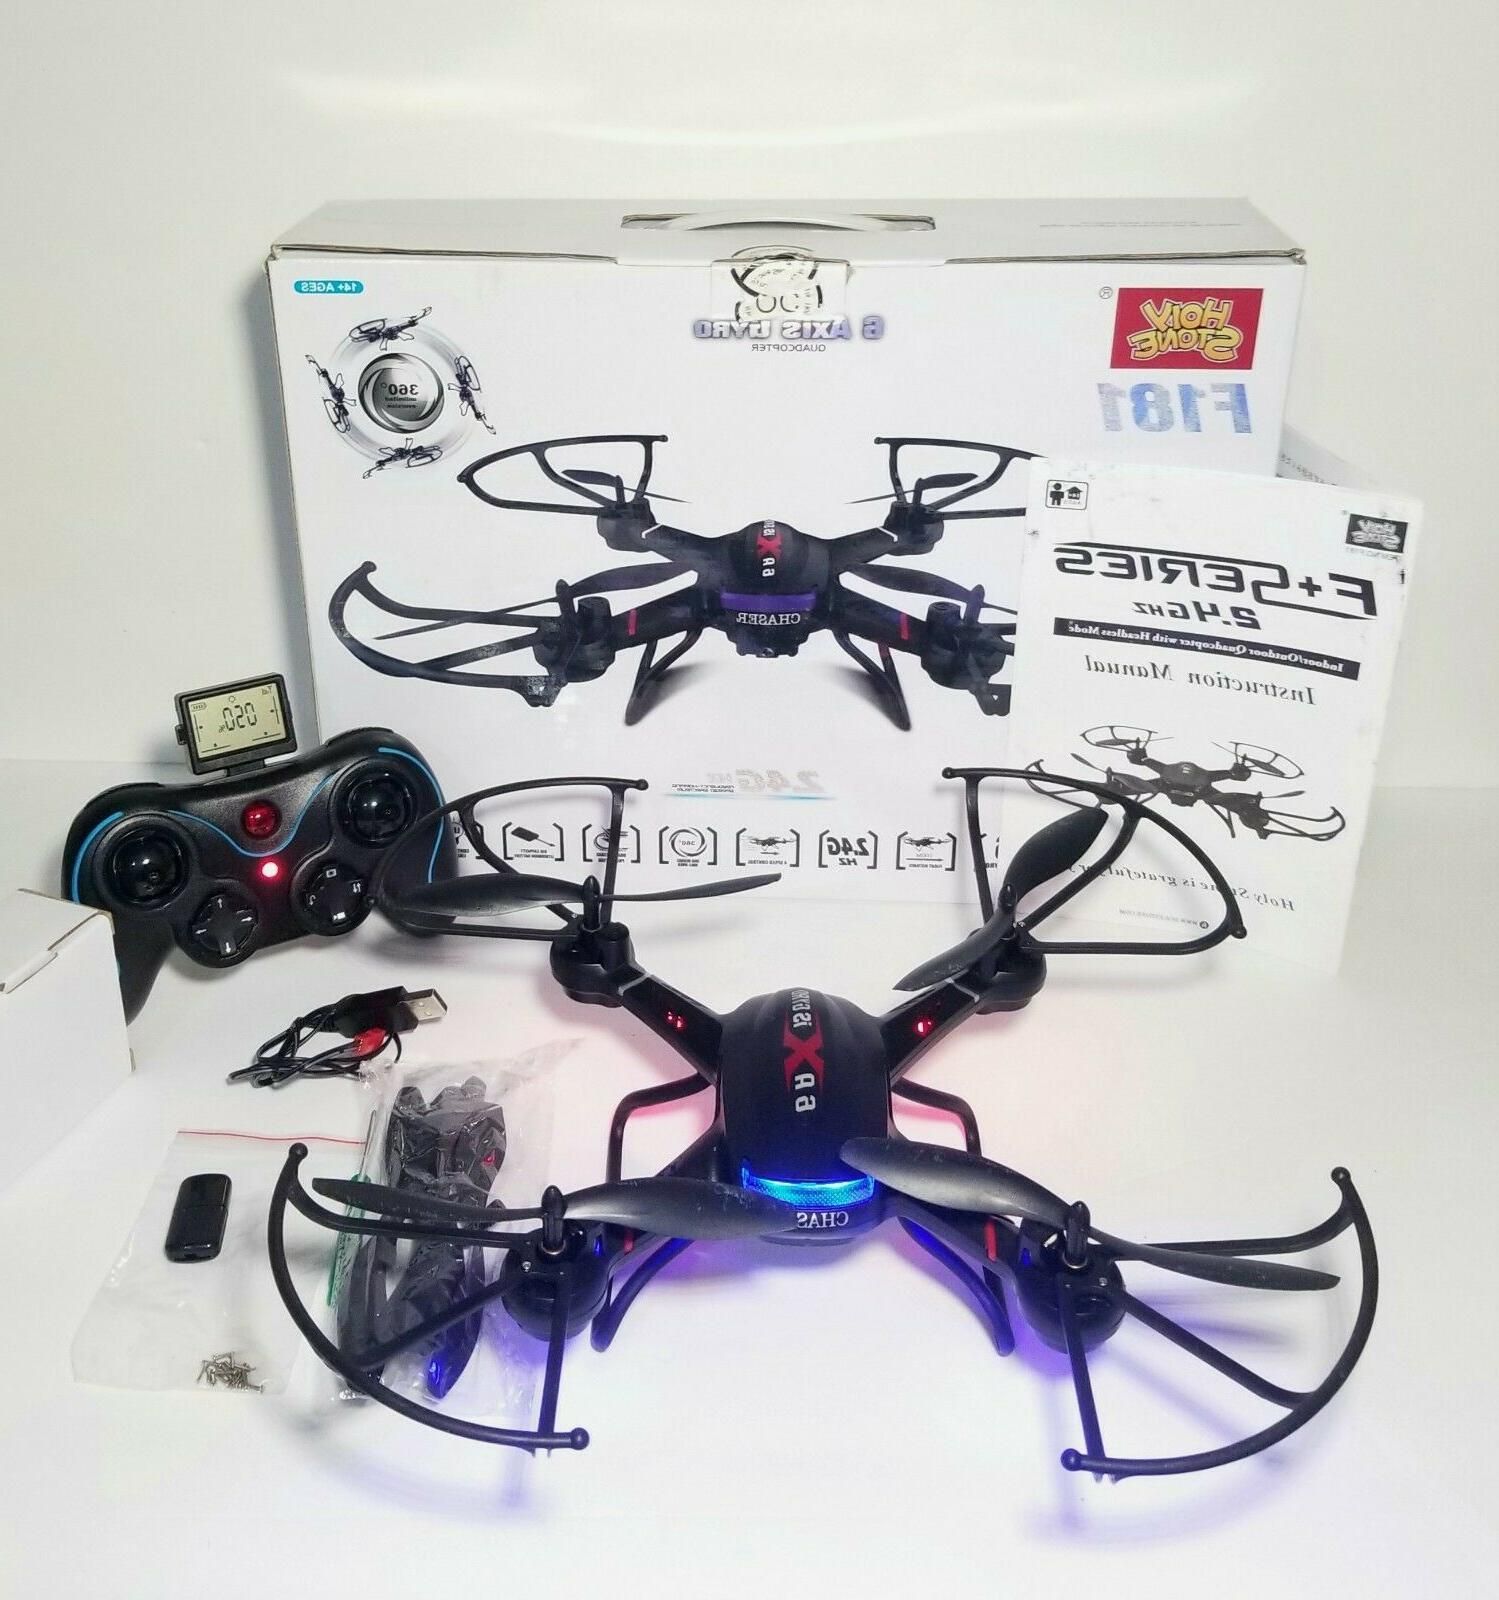 f181c rc quadcopter drone with hd camera